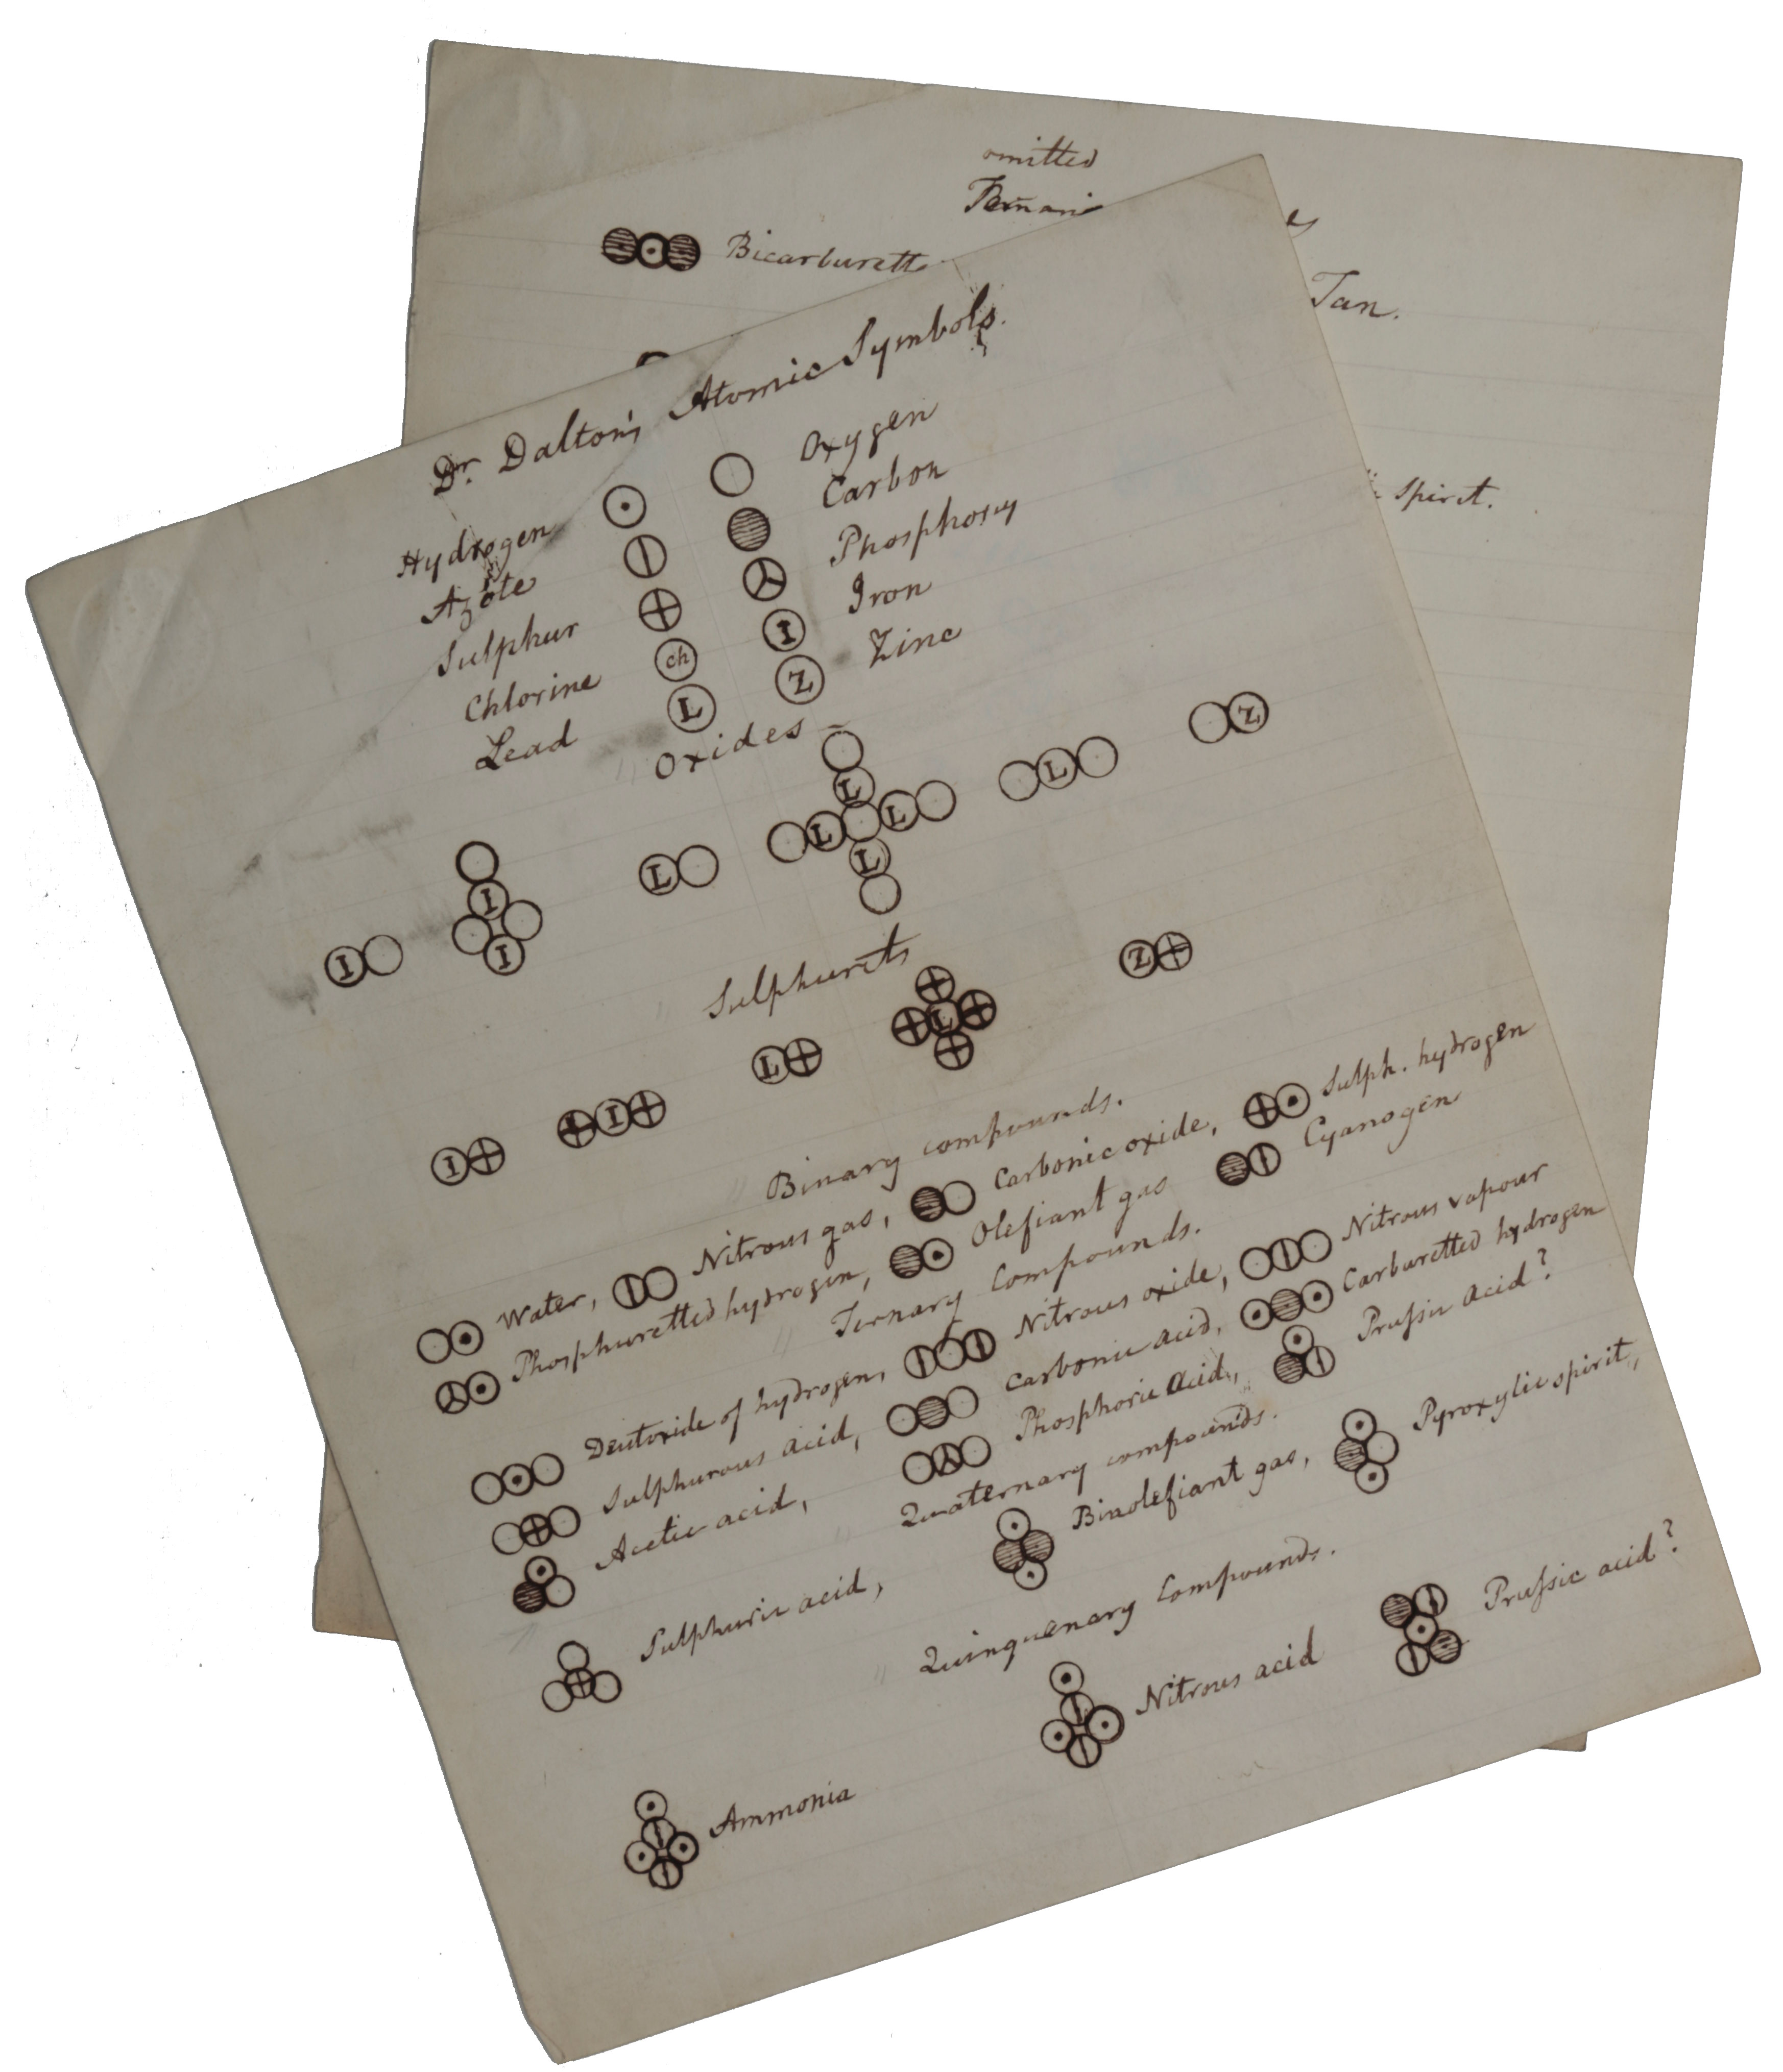 Atomic Symbols by John Dalton, explanatory of a Lecture given by him to the Members of the Manchester Mechanics' Institution, October 19th, 1835. Manuscript in contemporary (Dalton's?) hand. John DALTON.